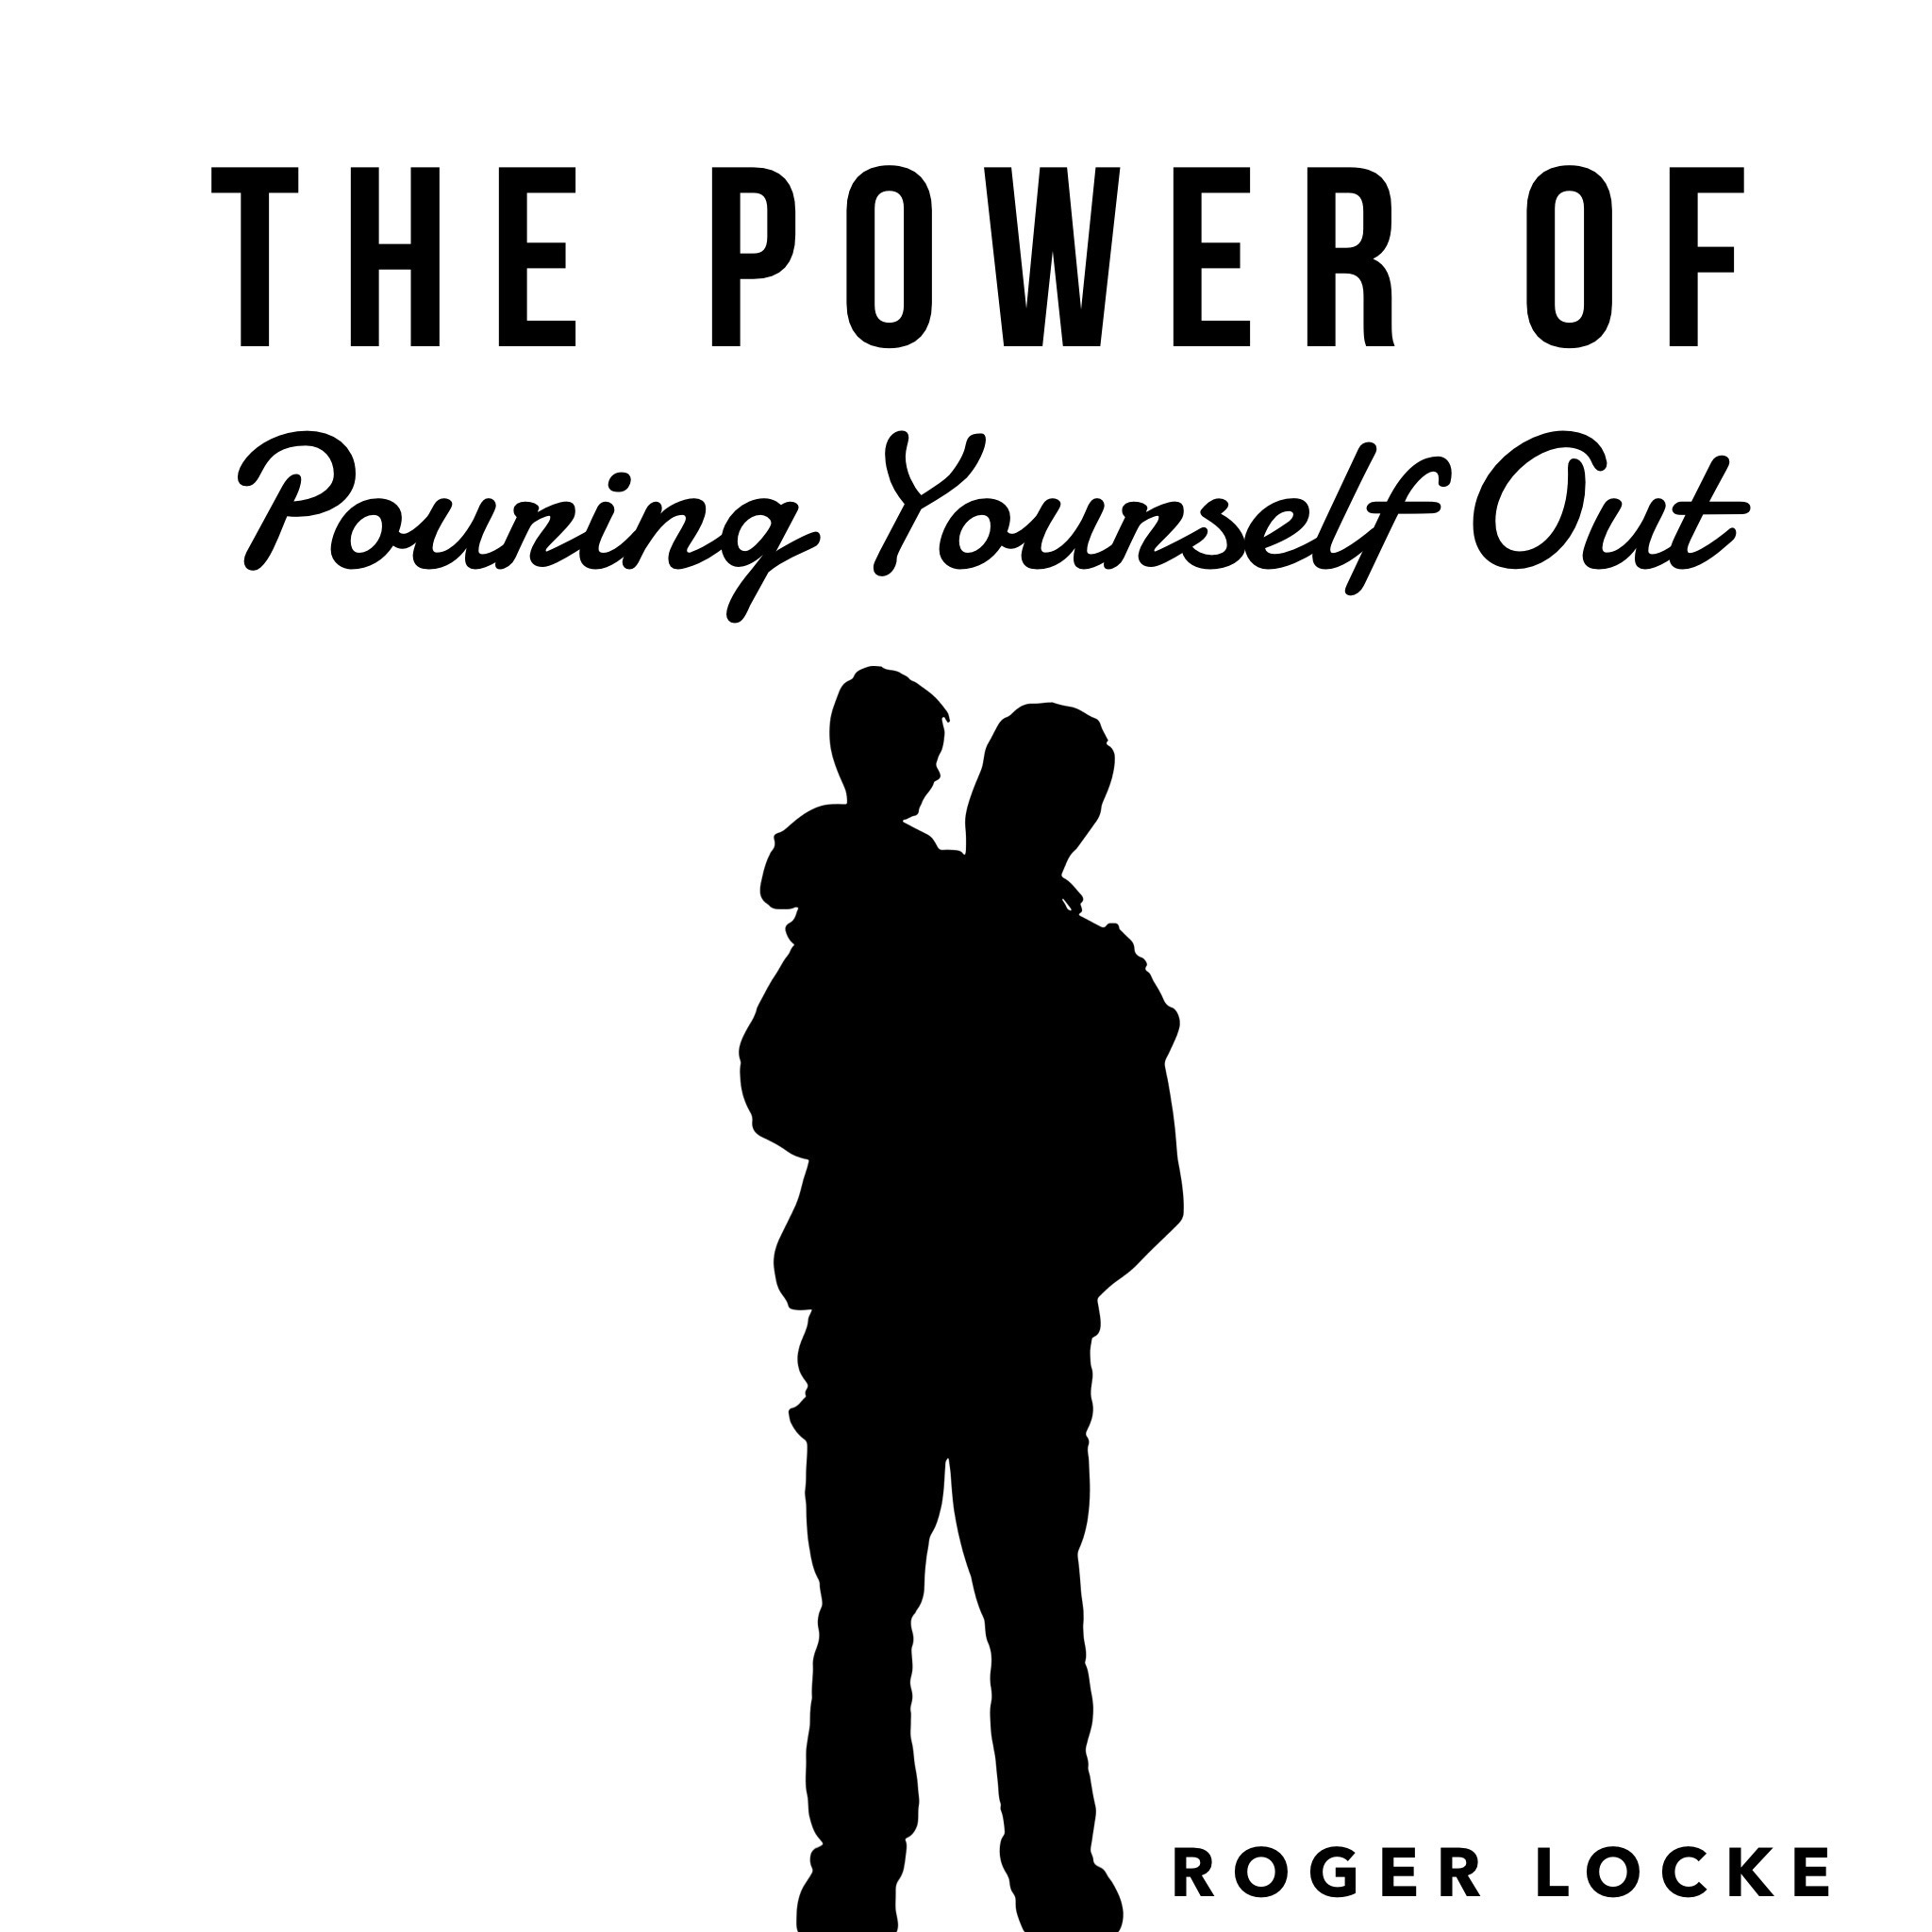 The Power of Pouring Yourself Out